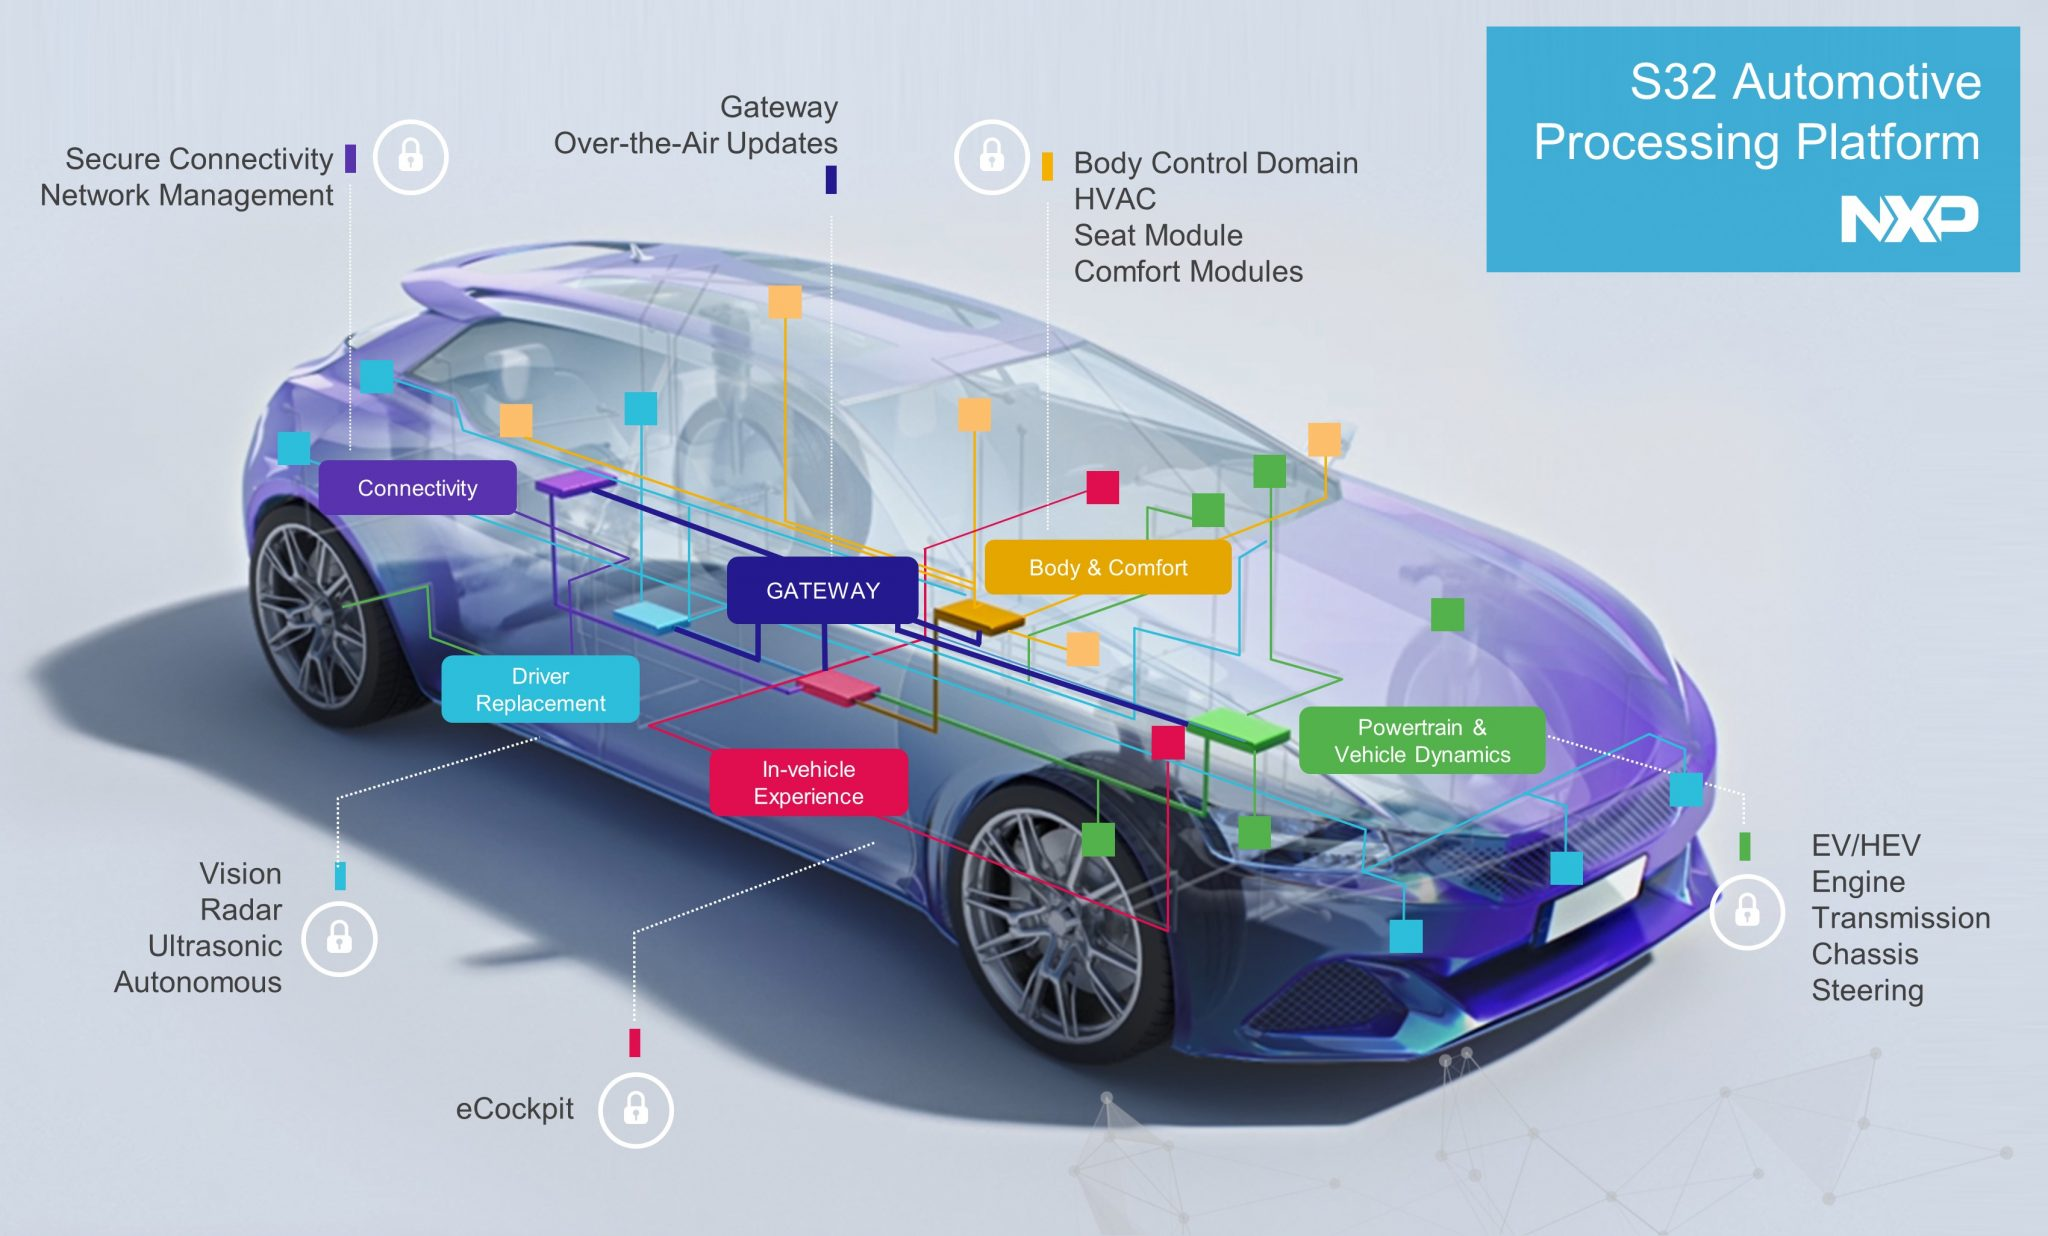 NXP brings new computing architecture to cars